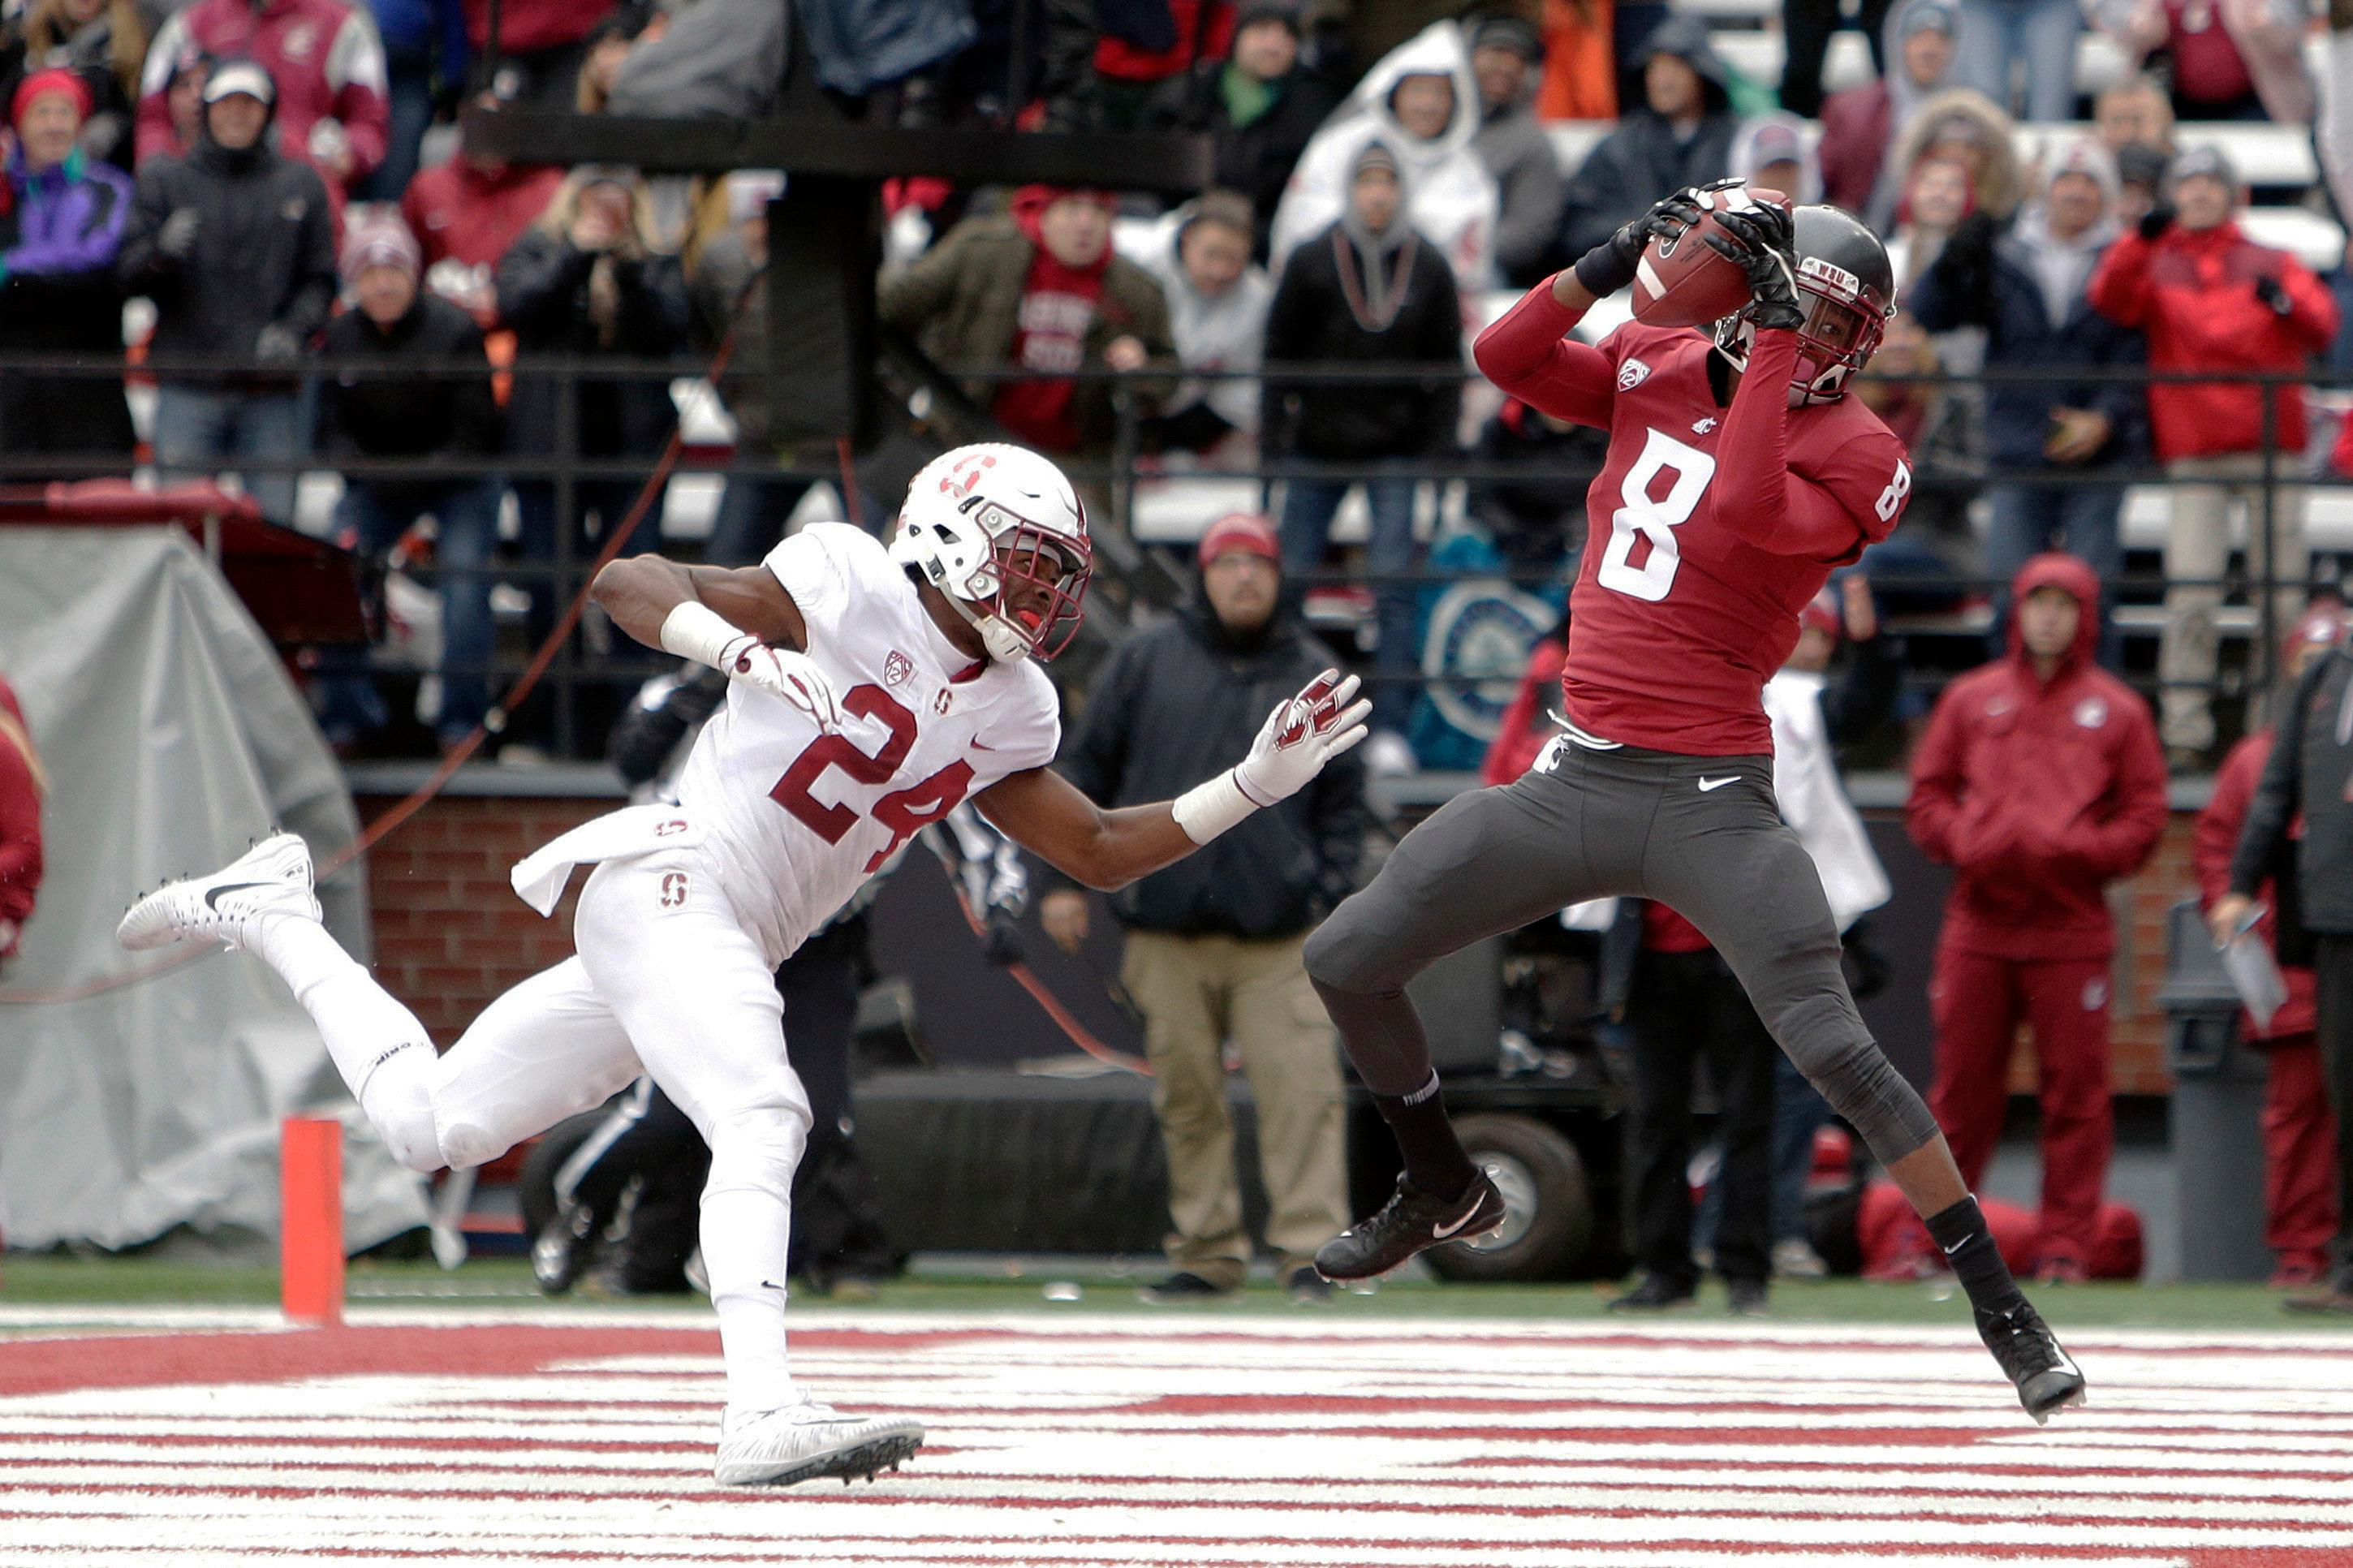 Washington State wide receiver Tavares Martin Jr. (8) catches a touchdown pass while defended by Stanford cornerback Quenton Meeks (24) during the first half of an NCAA college football game in Pullman, Wash., Saturday, Nov. 4, 2017. (AP Photo/Young Kwak)